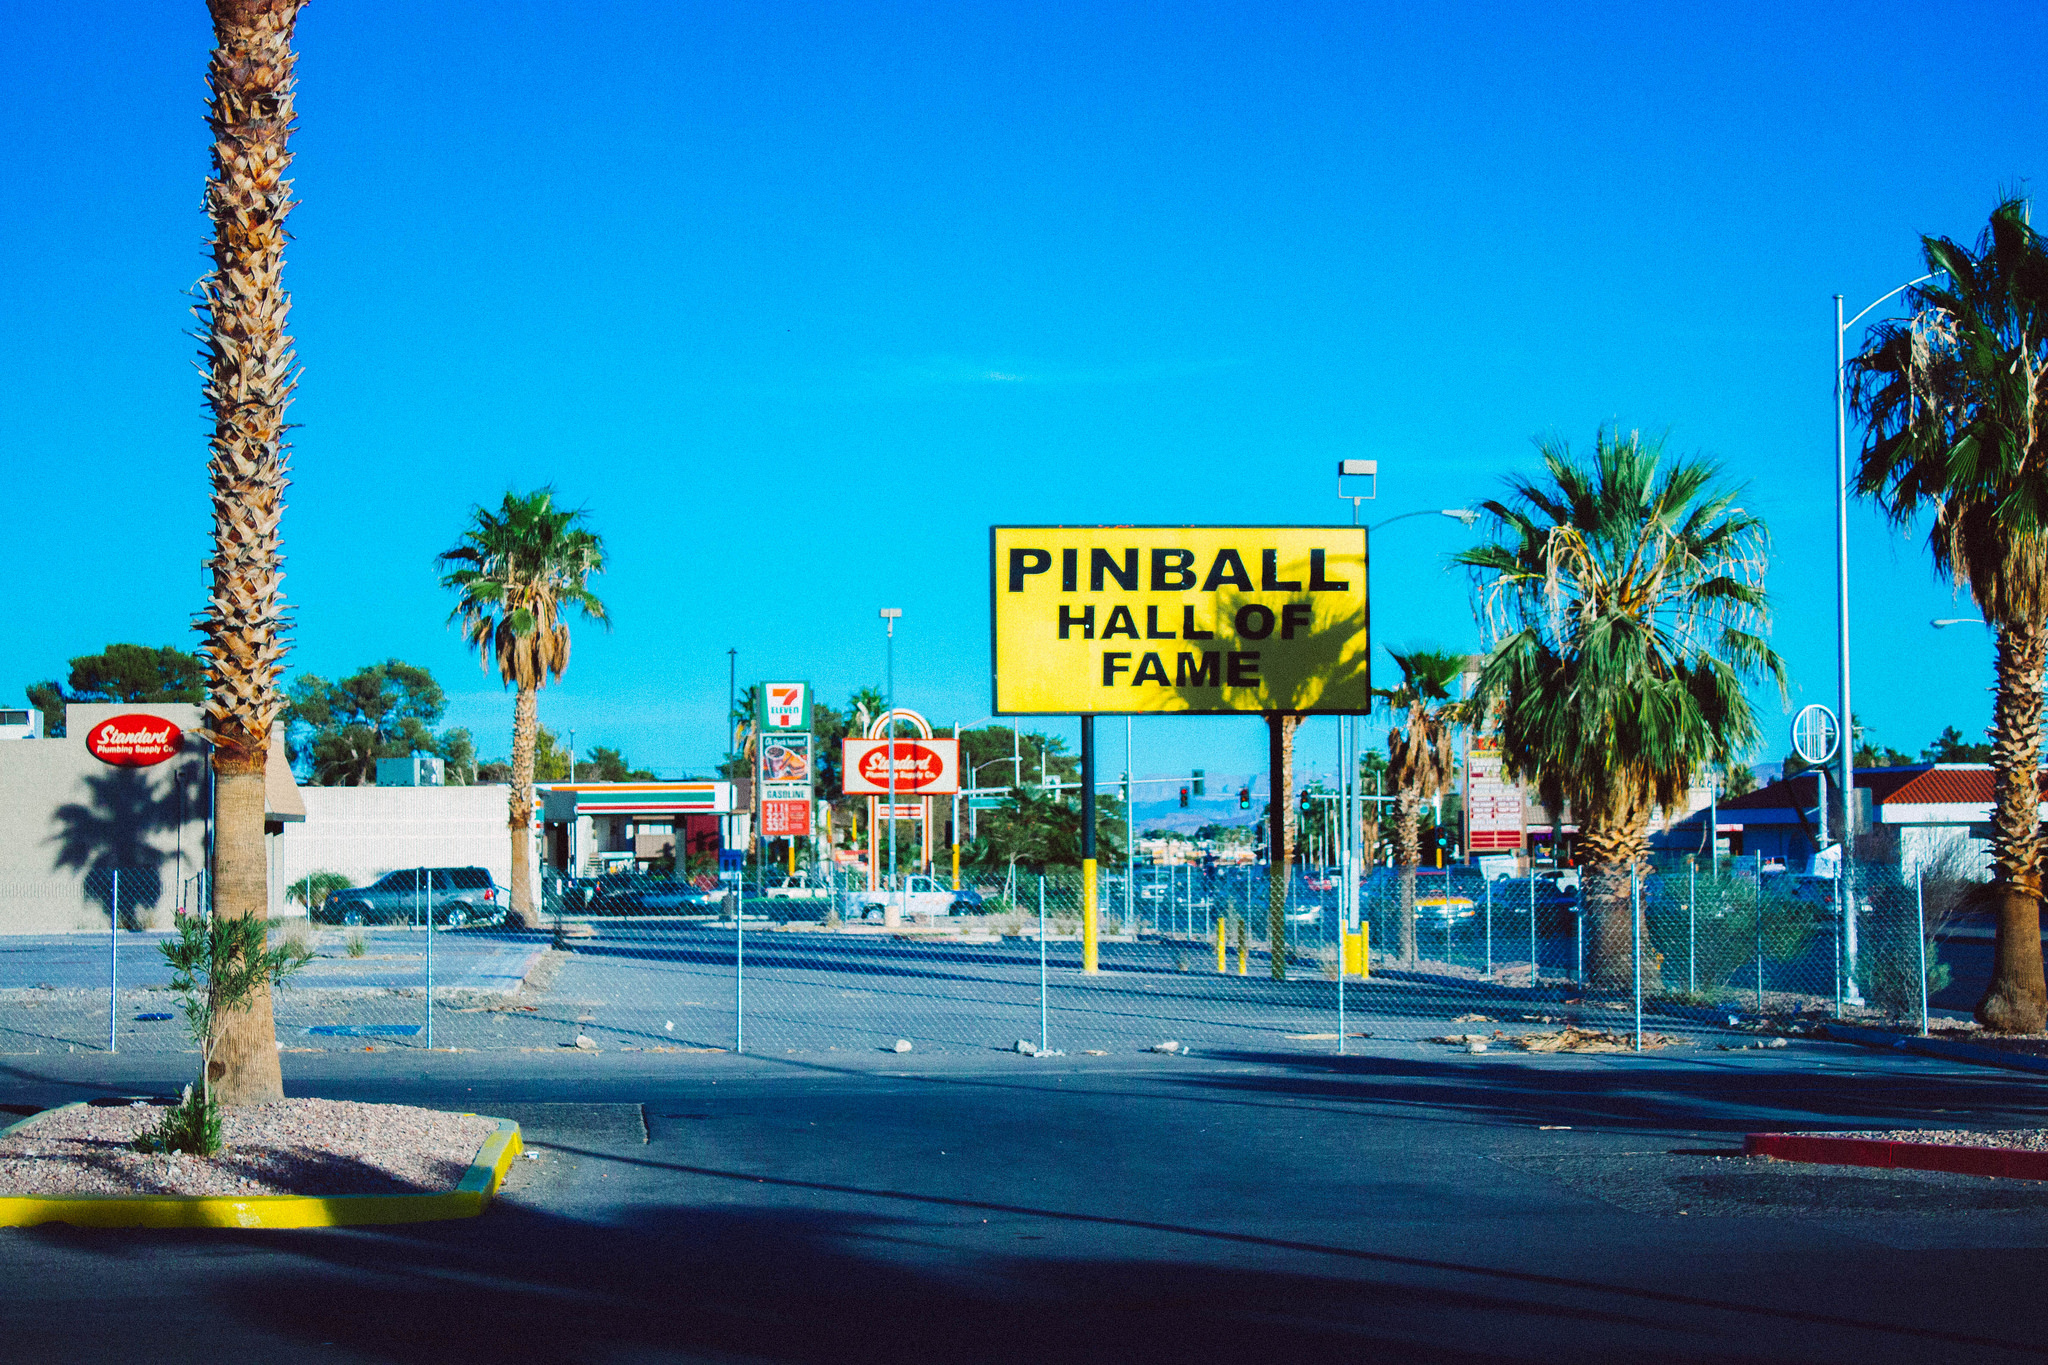 The Pinball Hall of Fame, One of the Best Alternative Things to do in Las Vegas